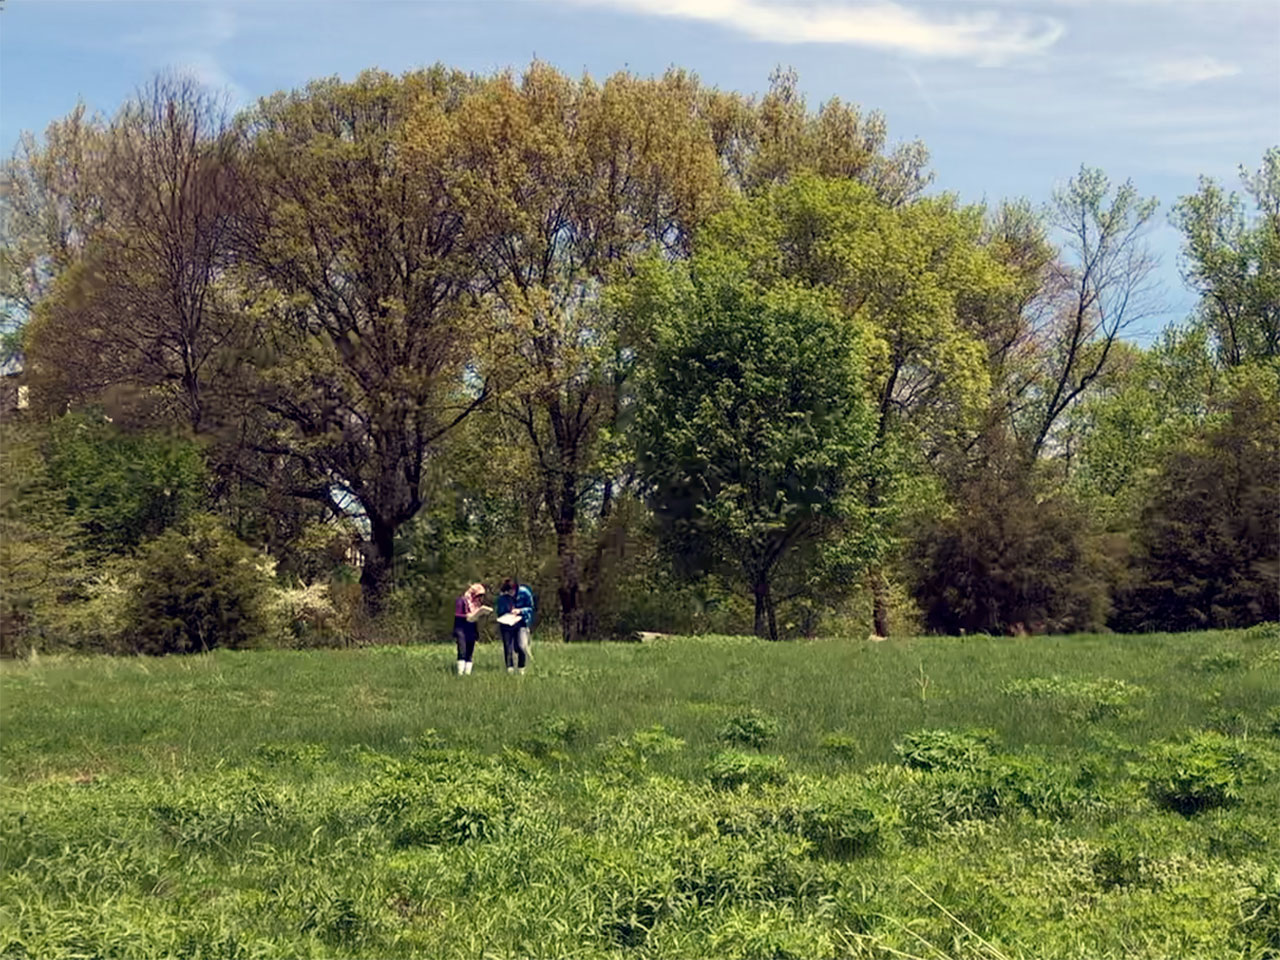 A verdant field surrounded by trees dwarfs an adult and child with sketchbooks